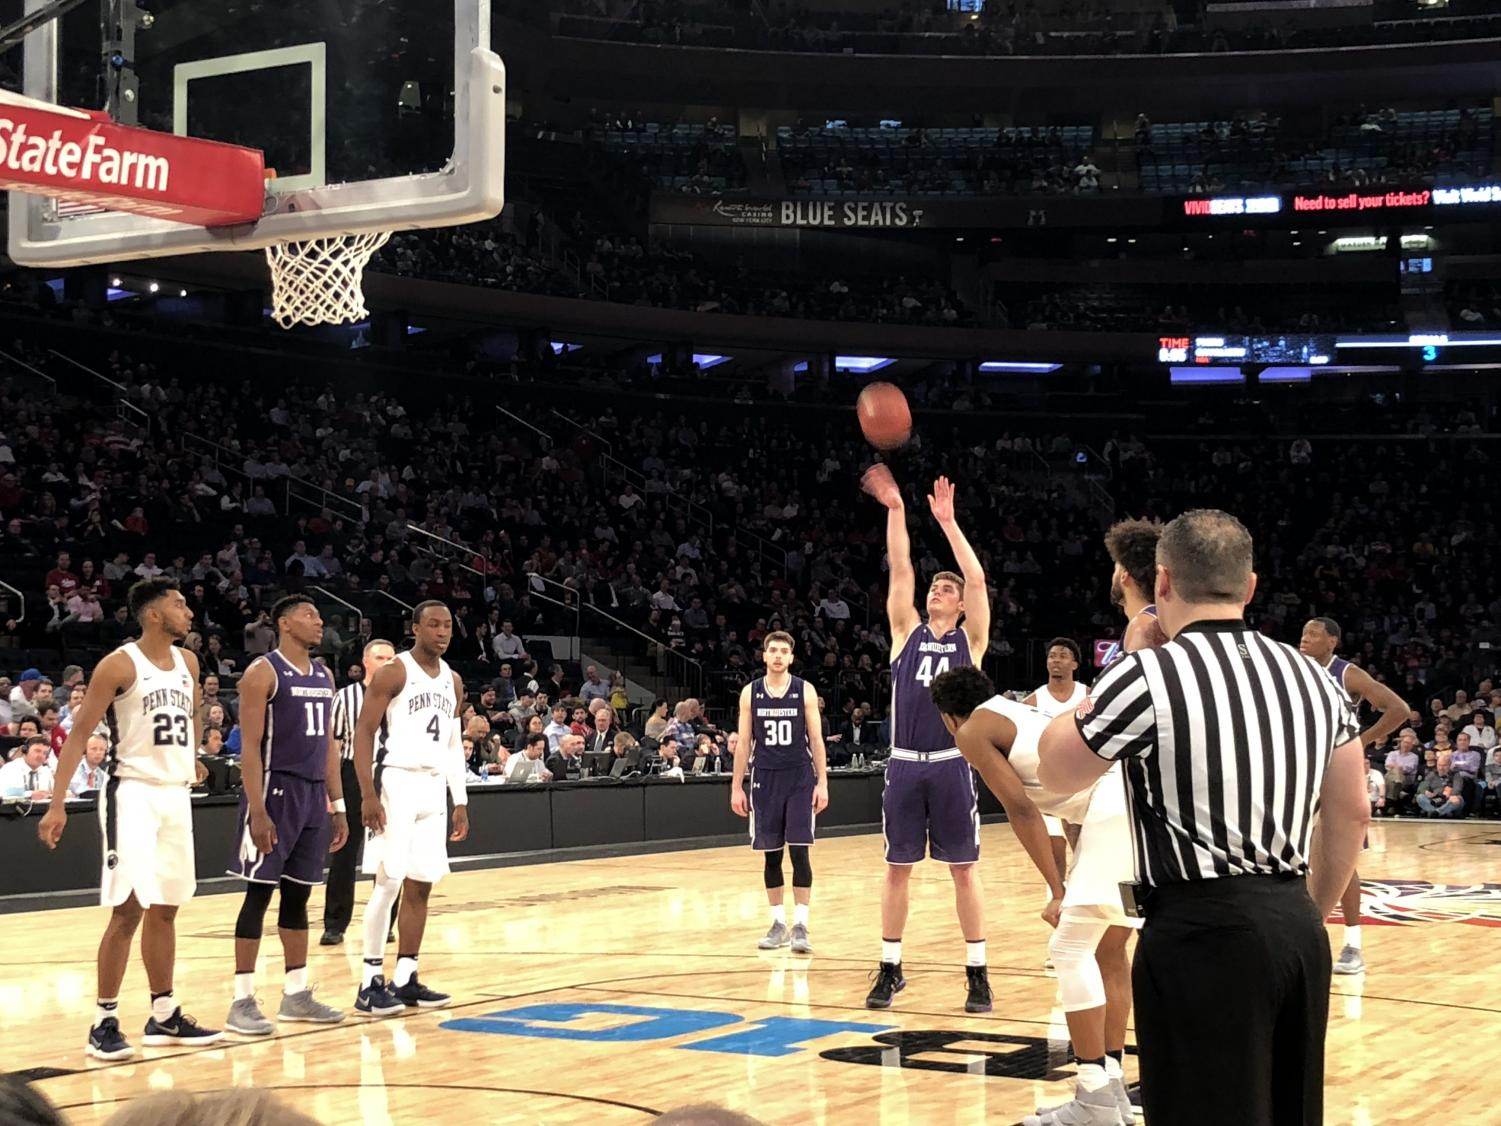 Gavin Skelly attempts a free throw. The senior forward scored 7 points in the Wildcats' Big Ten Tournament game against Penn State.